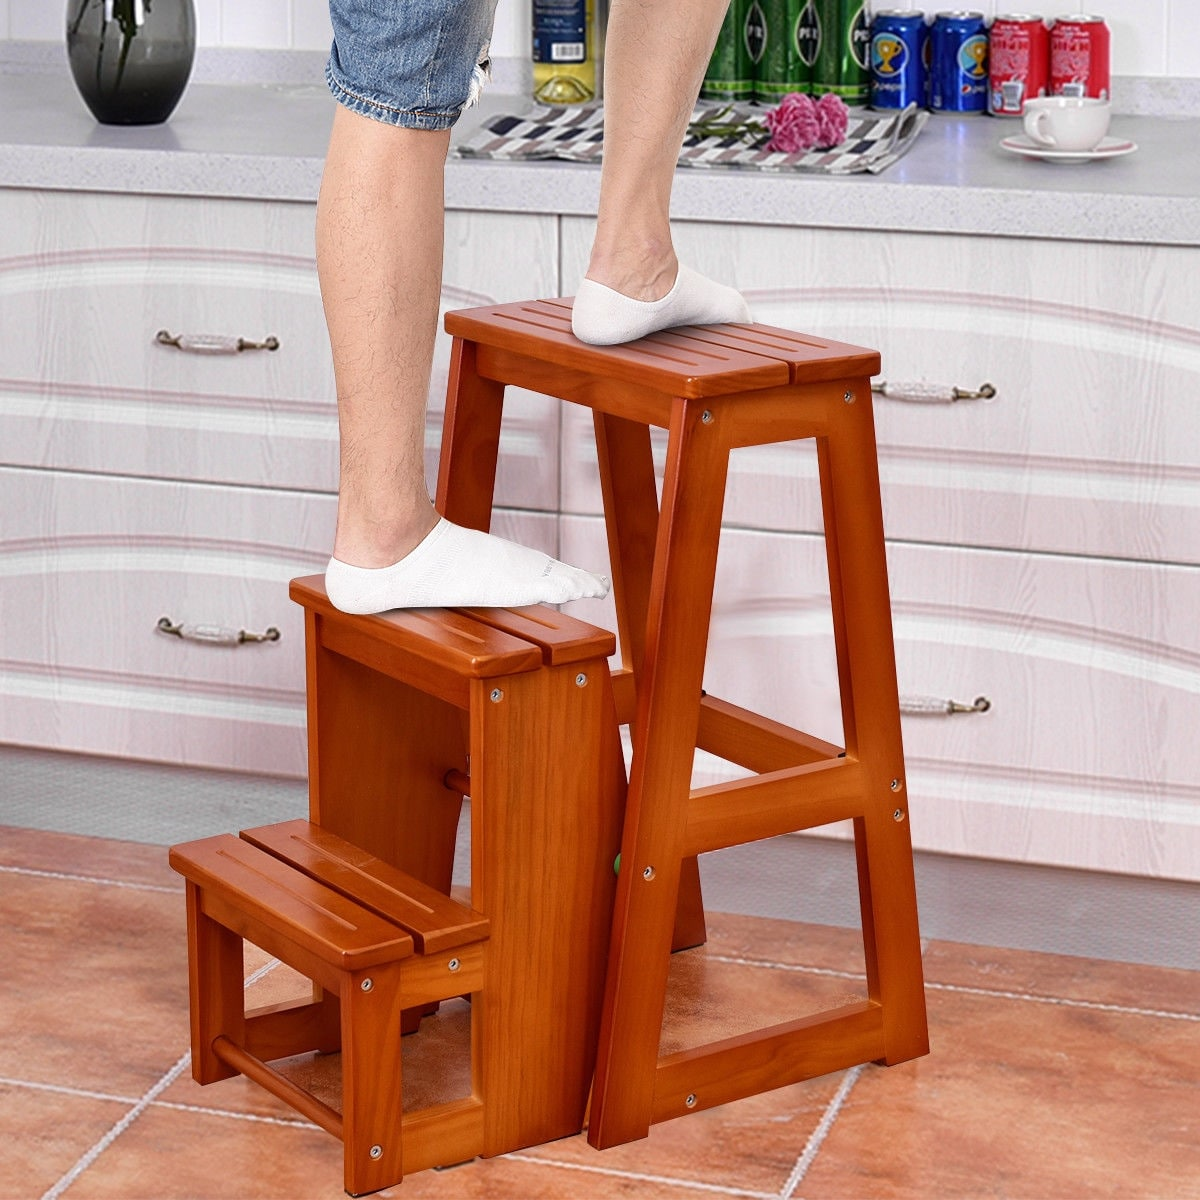 Shop Costway Wood Step Stool Folding 3 Tier Ladder Chair Bench Seat